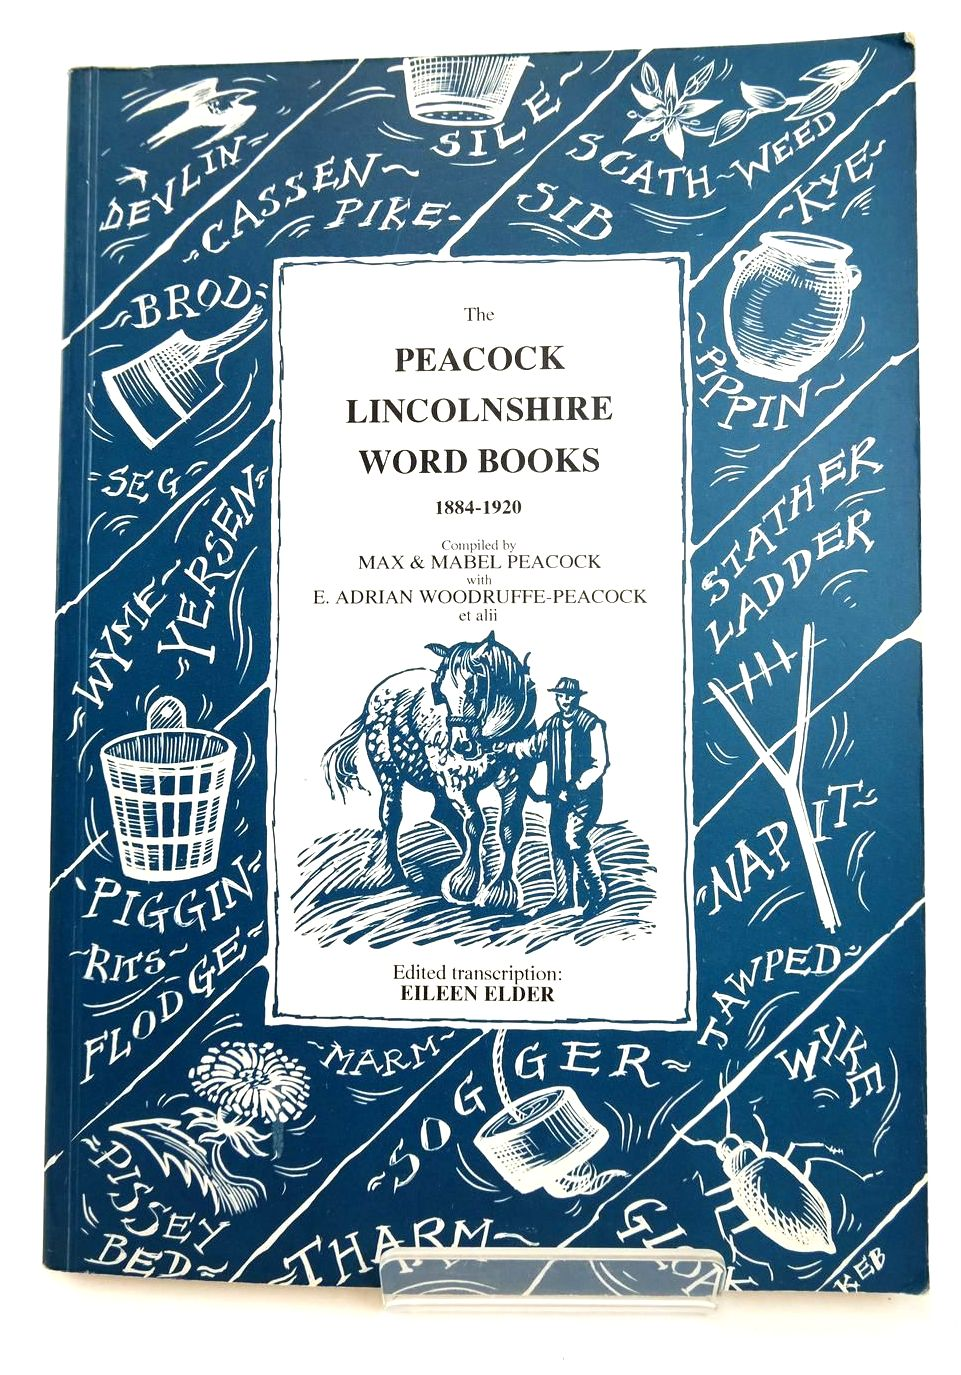 Photo of THE PEACOCK LINCOLNSHIRE WORD BOOKS 1884-1920 written by Peacock, Max Peacock Mabel, Woodruffe-Peacock, E. Adrian Elder, Eileen published by Scunthorpe Museum Society (STOCK CODE: 2132761)  for sale by Stella & Rose's Books